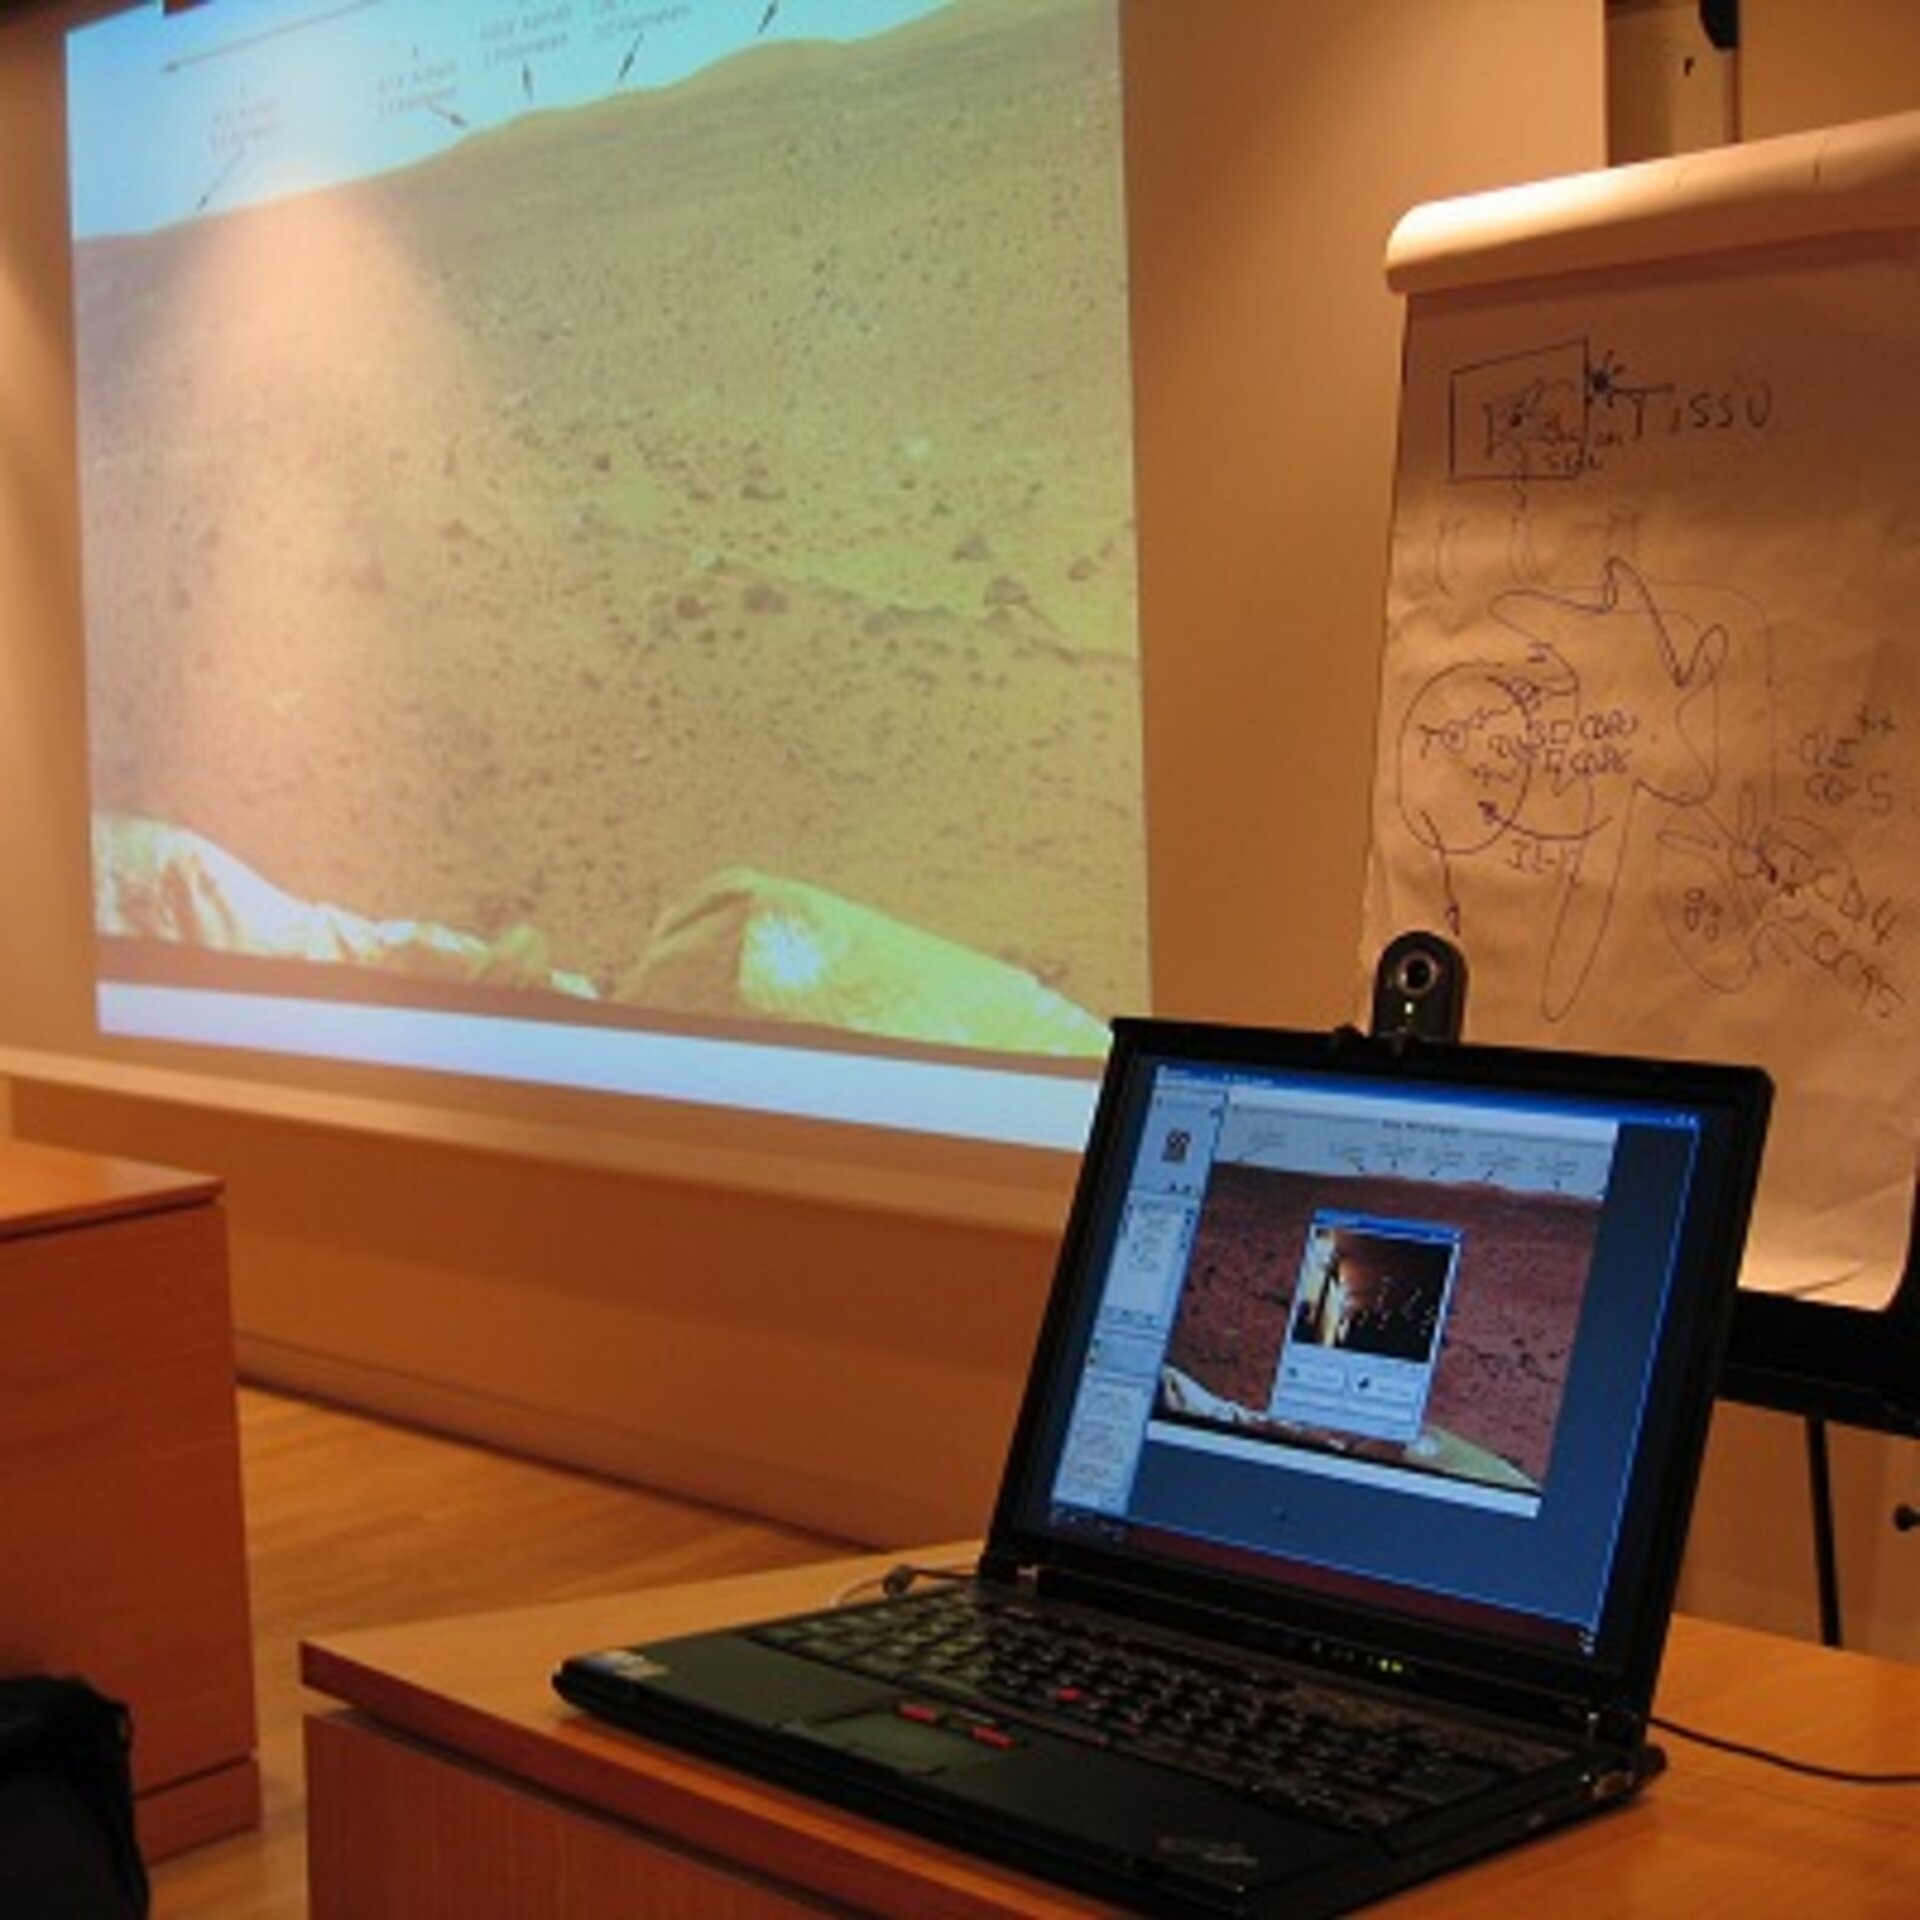 Participants could follow both the visuals and speech of the interactive lecturers over the Internet